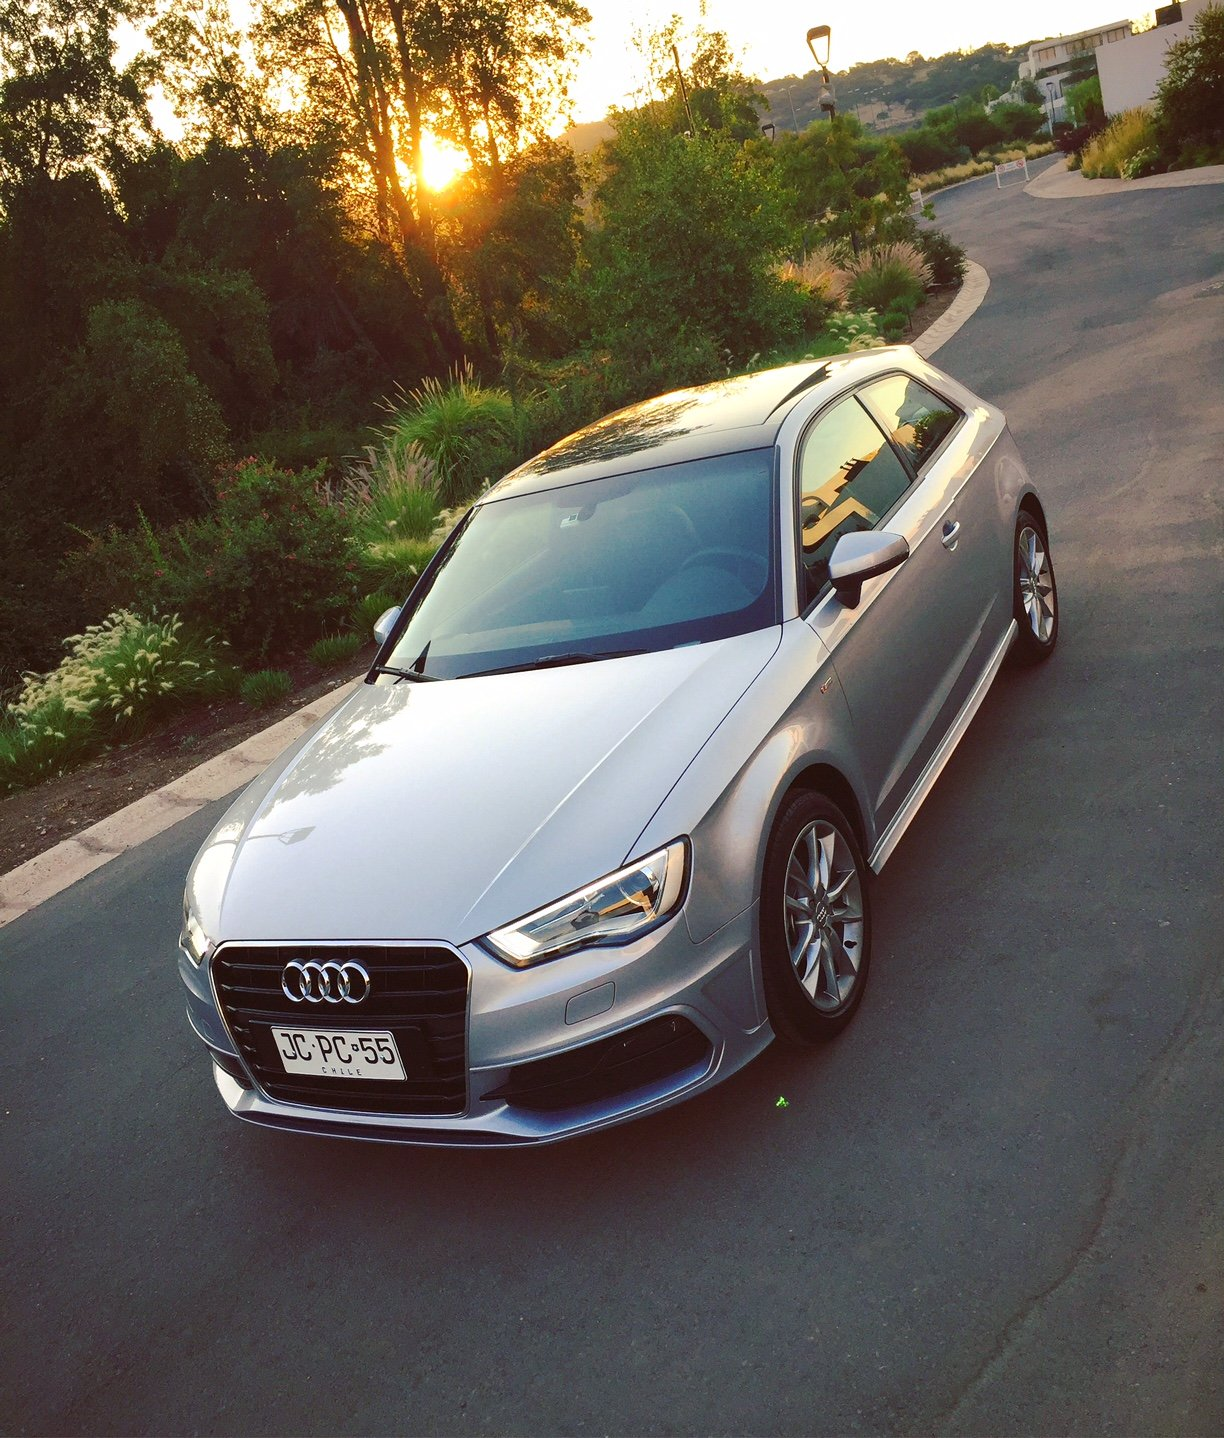 Daily Driver Mod Suggestions | Audi-Sport net